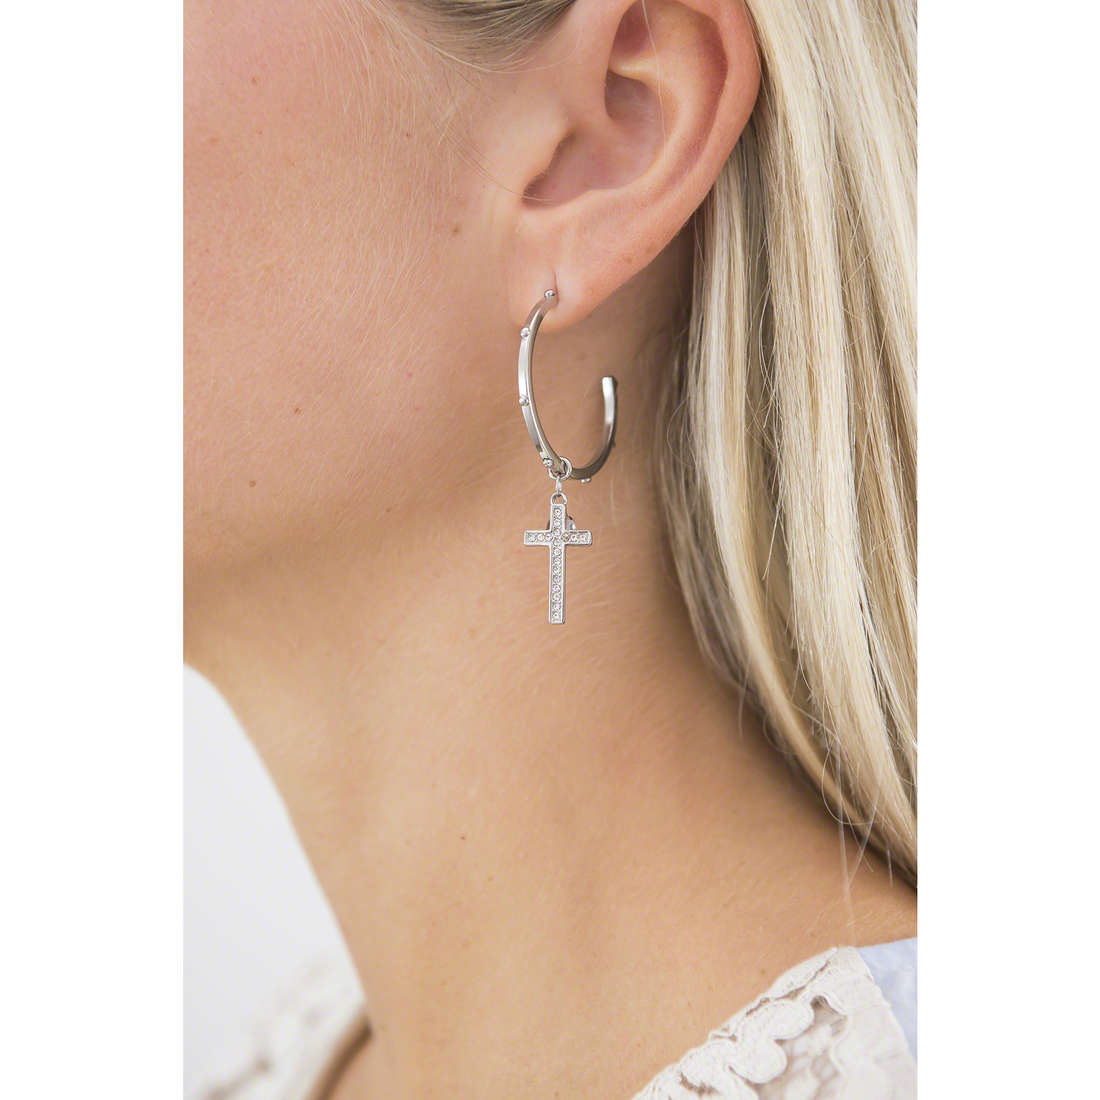 Brosway boucles d'oreille Dogma femme BDO21 indosso